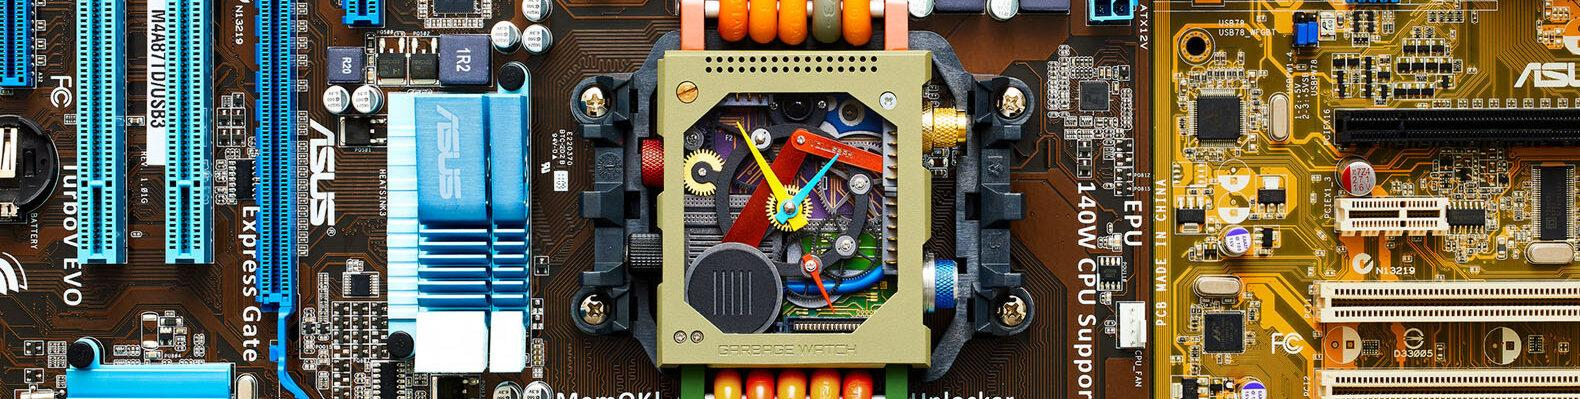 a close-up of the face of a watch with an orange band and square face. the face of the watch includes colorful mechanical parts. recycled electronic parts surround the watch.